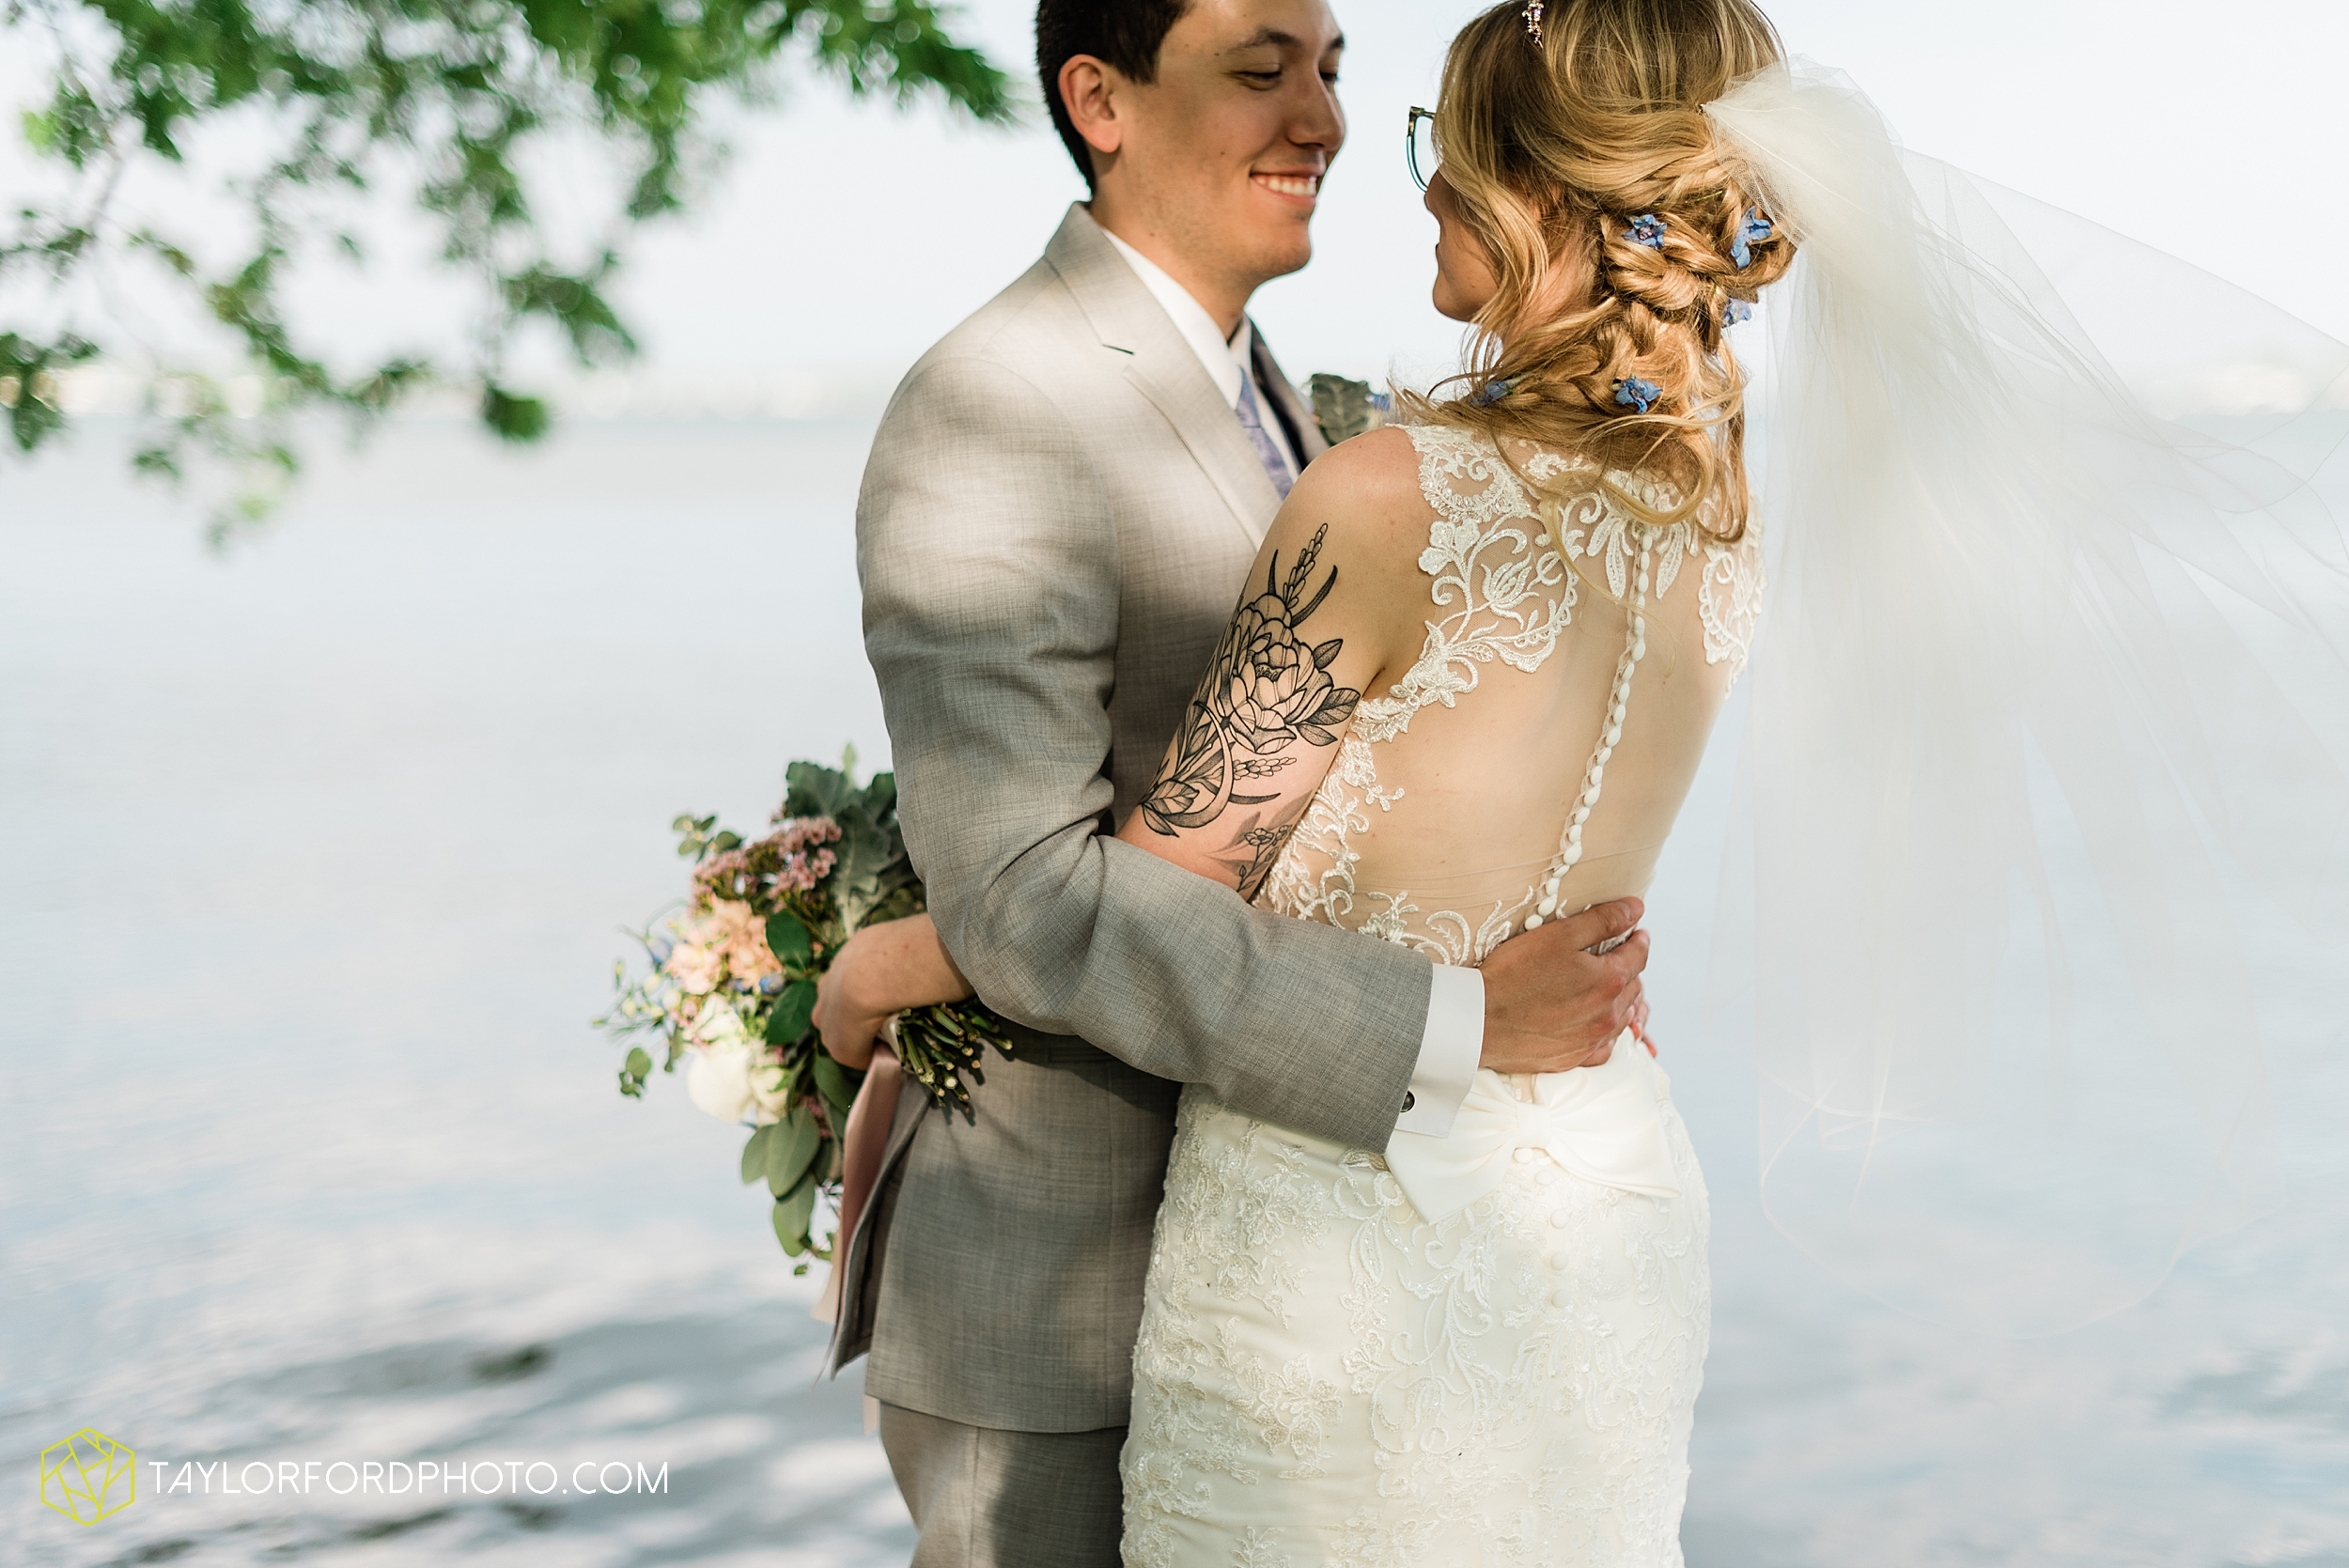 janine-shaun-oakwood-resort-syracuse-indiana-lake-wawasee-wedding-hilltop-one-fine-day-photographer-photography-taylor-ford-hirschy-photographer_2777.jpg